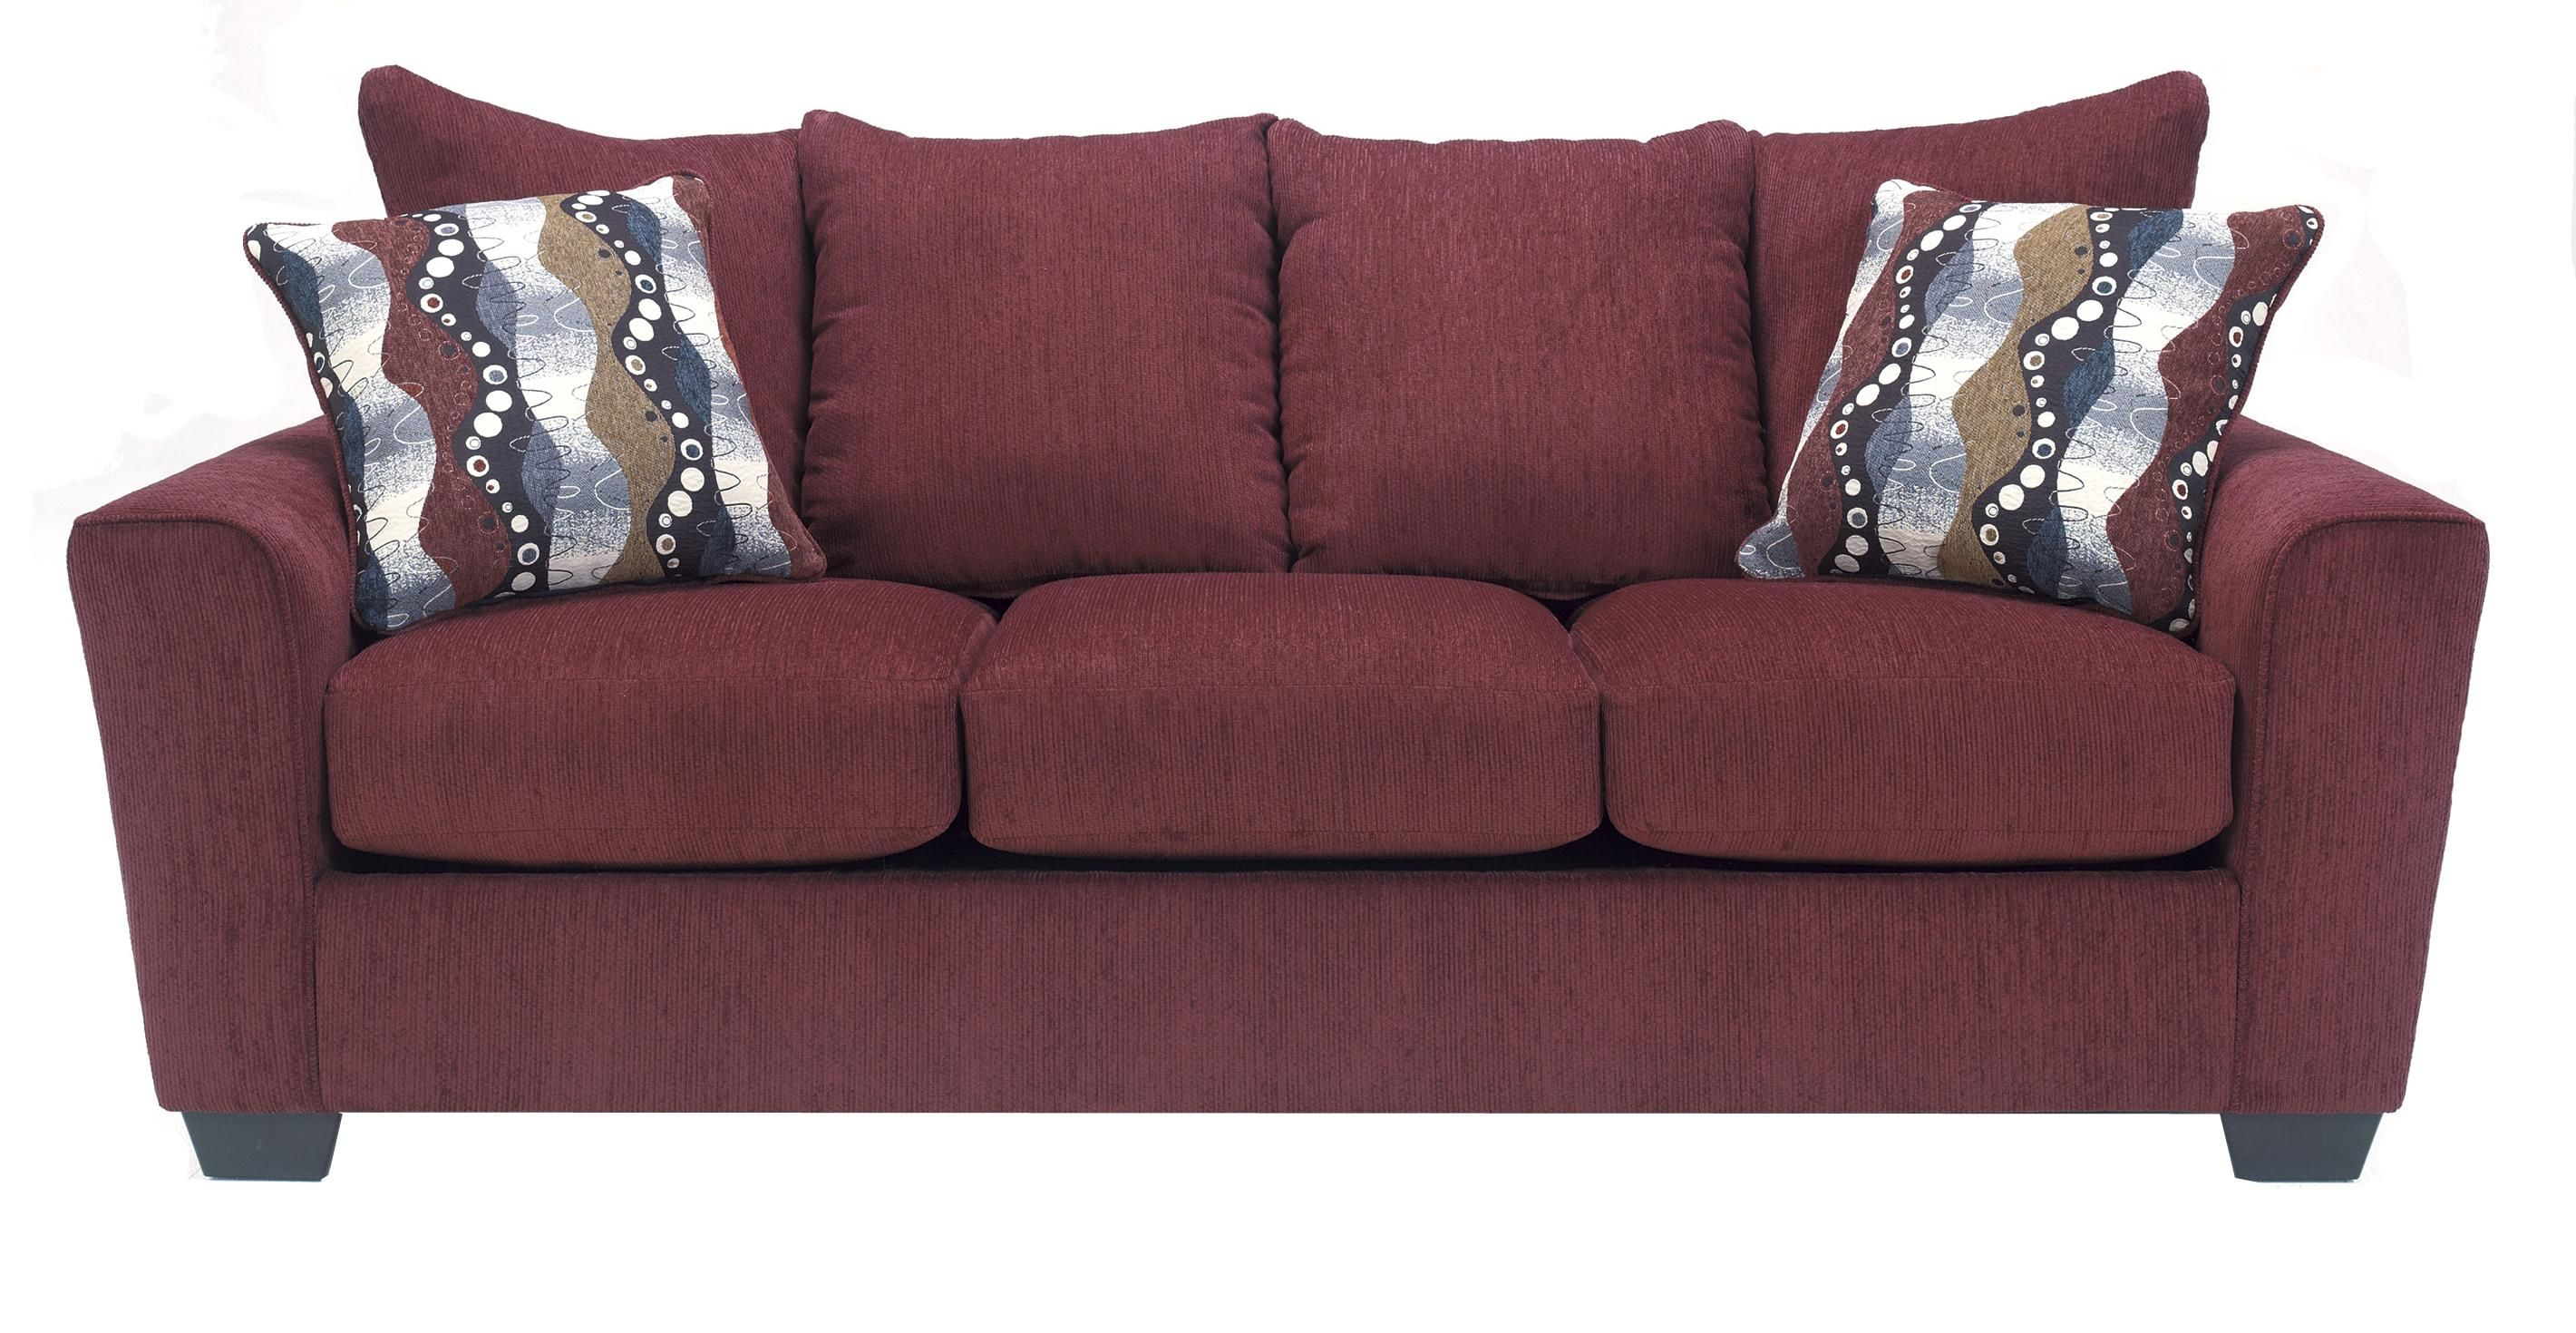 Prime Brogain Burgundy Sofa By Benchcraft Red Furniture Pdpeps Interior Chair Design Pdpepsorg